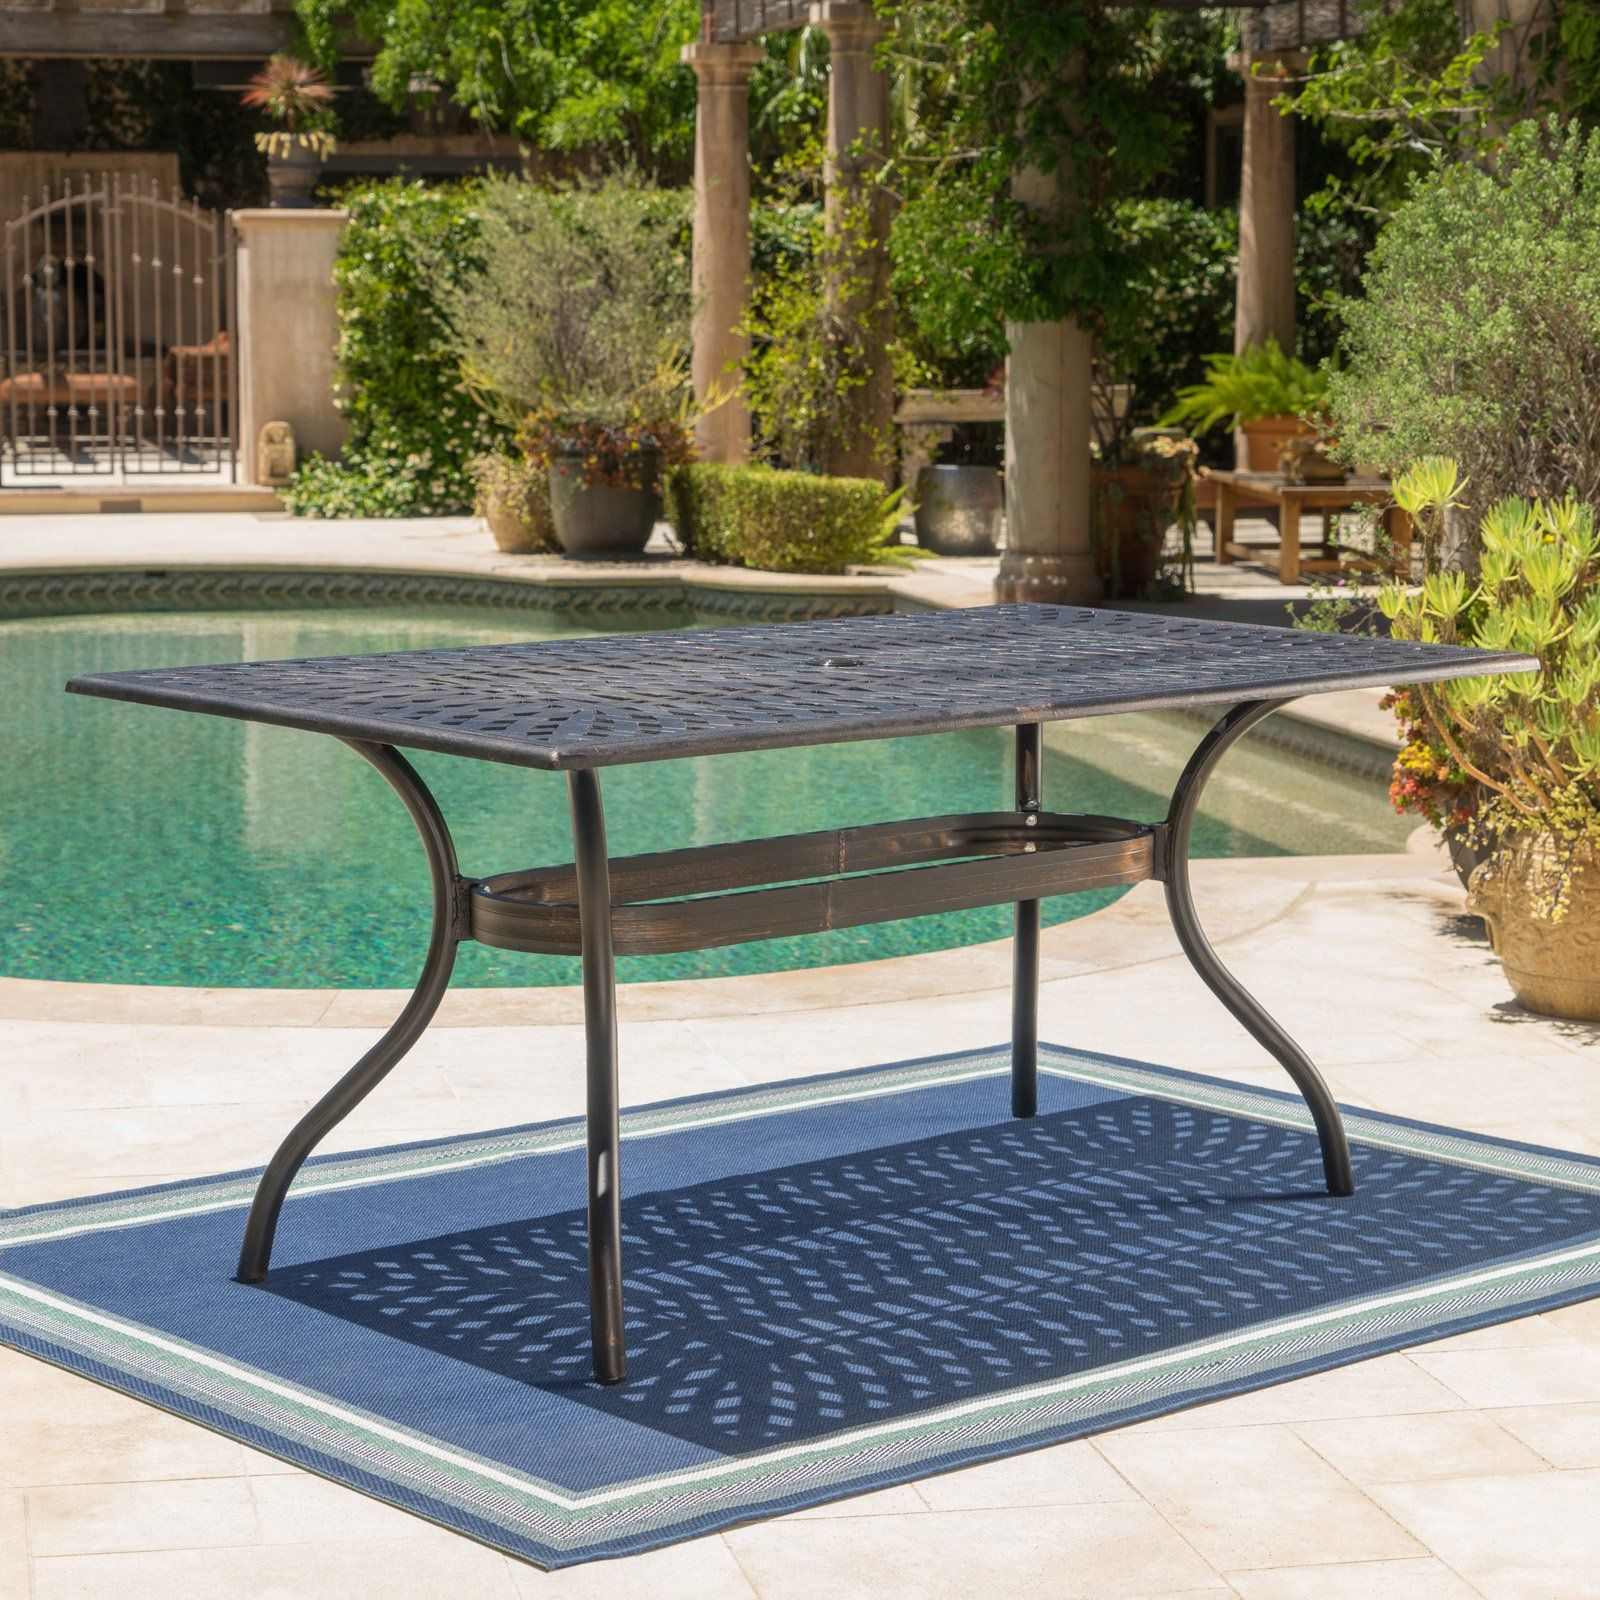 Austin Outdoor Shiny Copper Rectangular Dining Table Patio